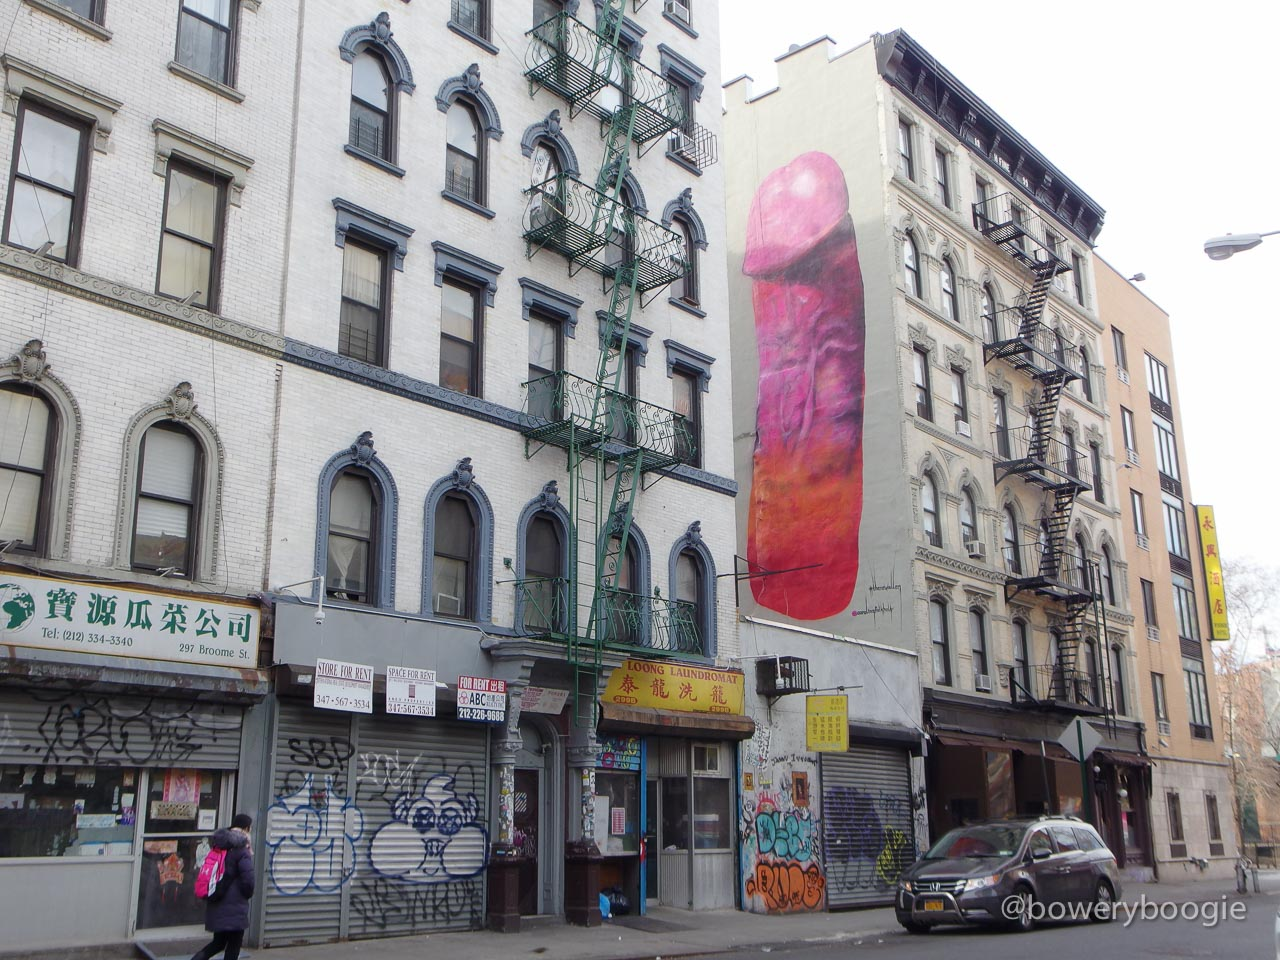 premature ejection 4 story penis mural on broome street